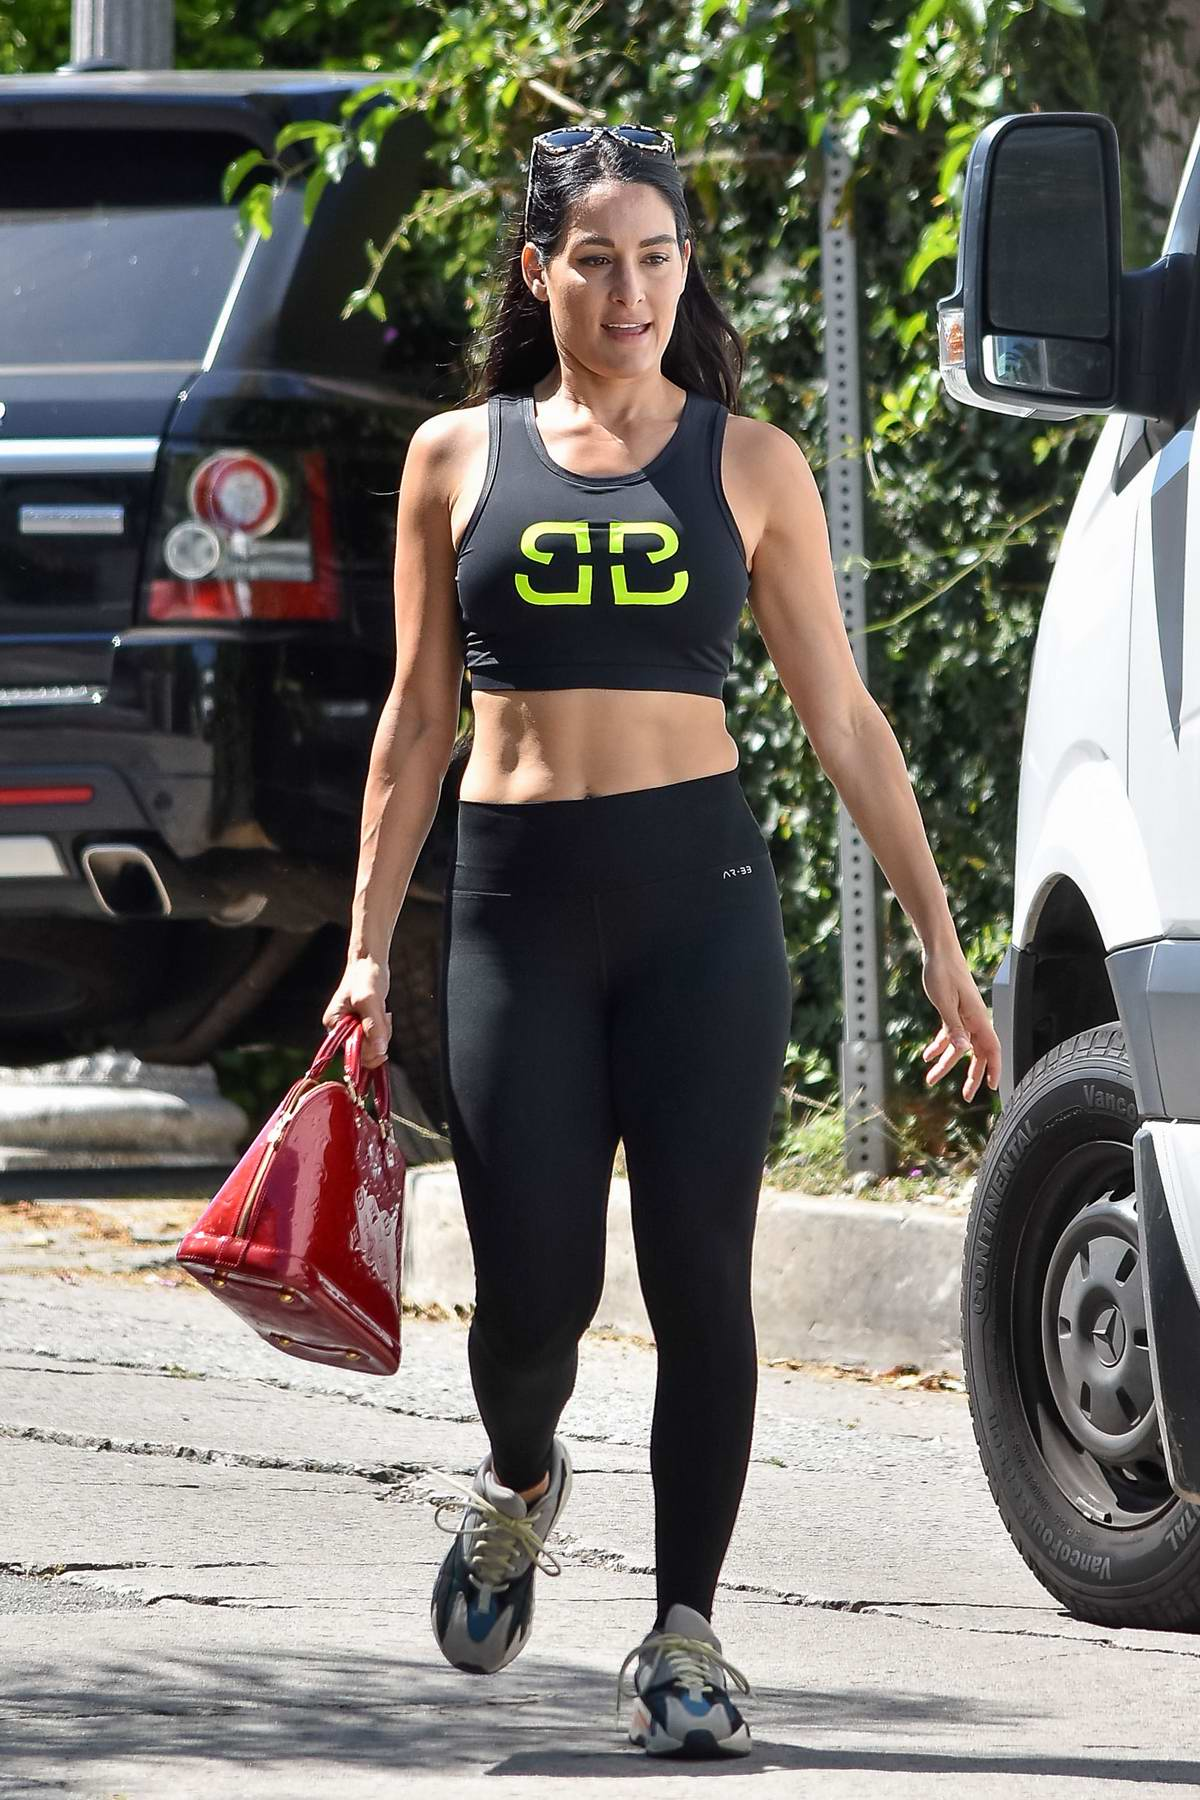 Nikki Bella shows off her fit body in BirdieBee tank, black leggings and Yeezys while out running errands in Los Angeles